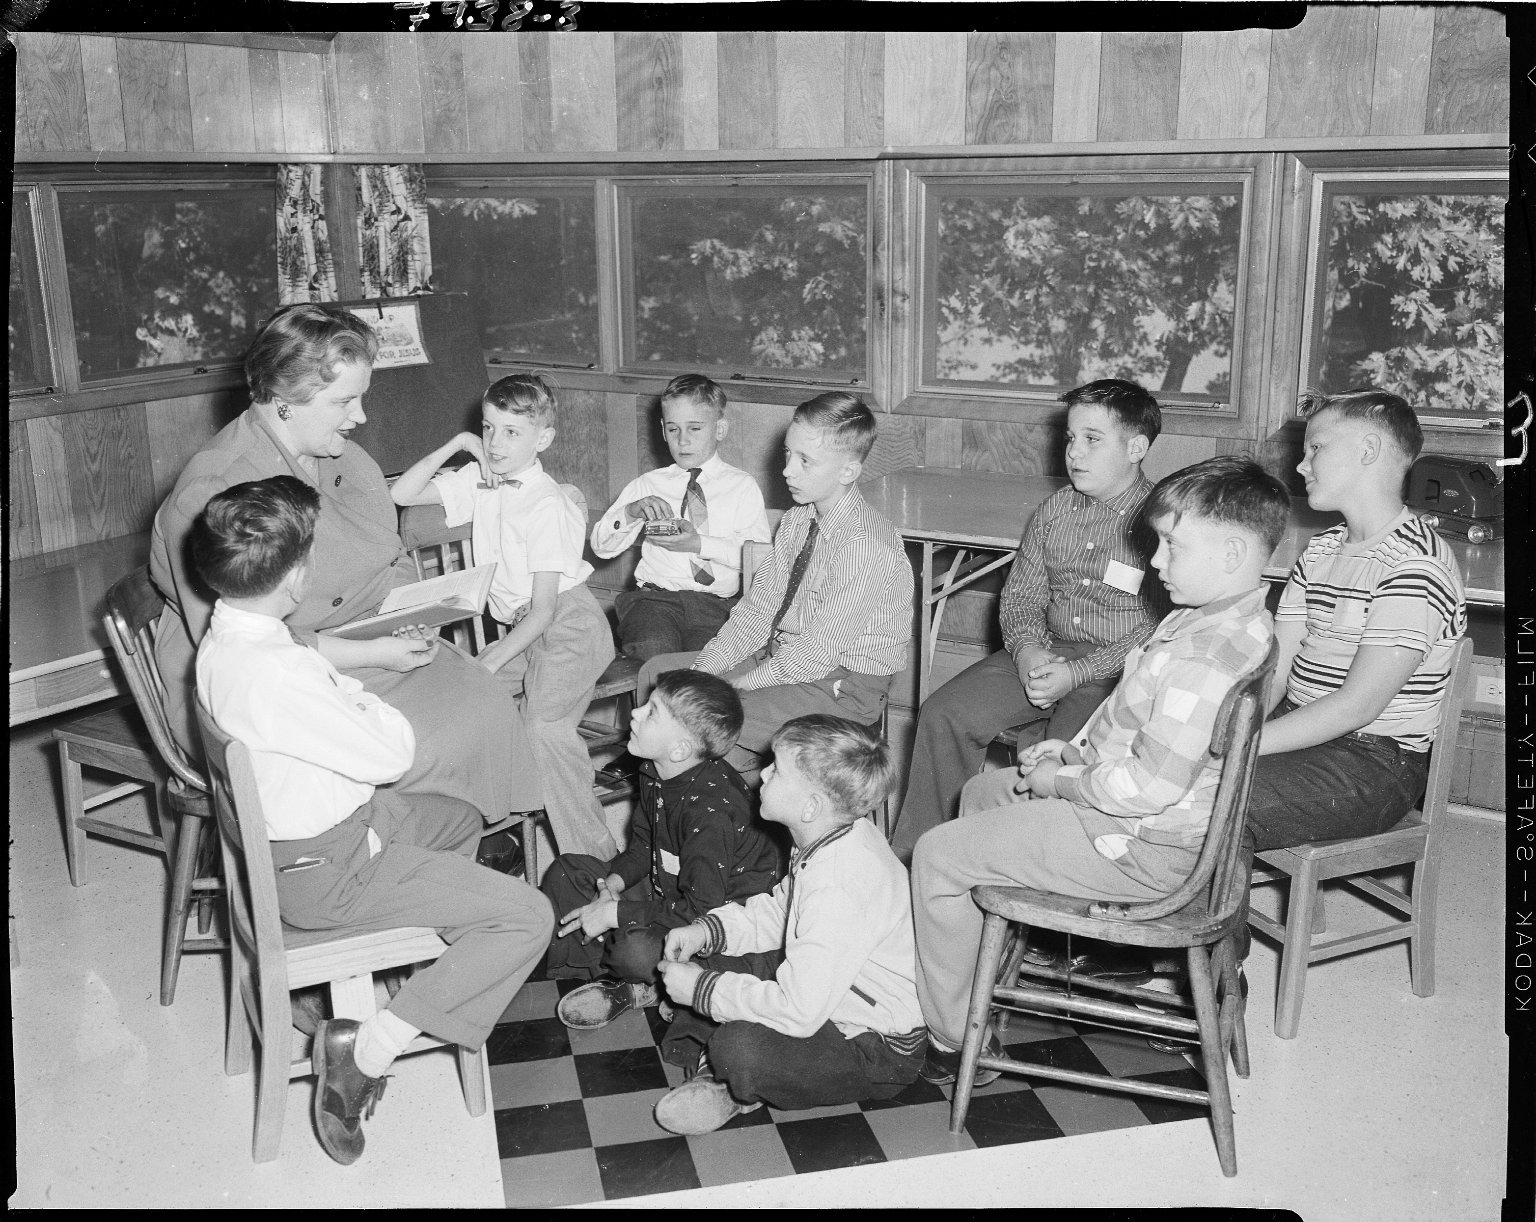 Lake Farm Boys Home, Kalamazoo, interior, woman reading to boys in a classroom